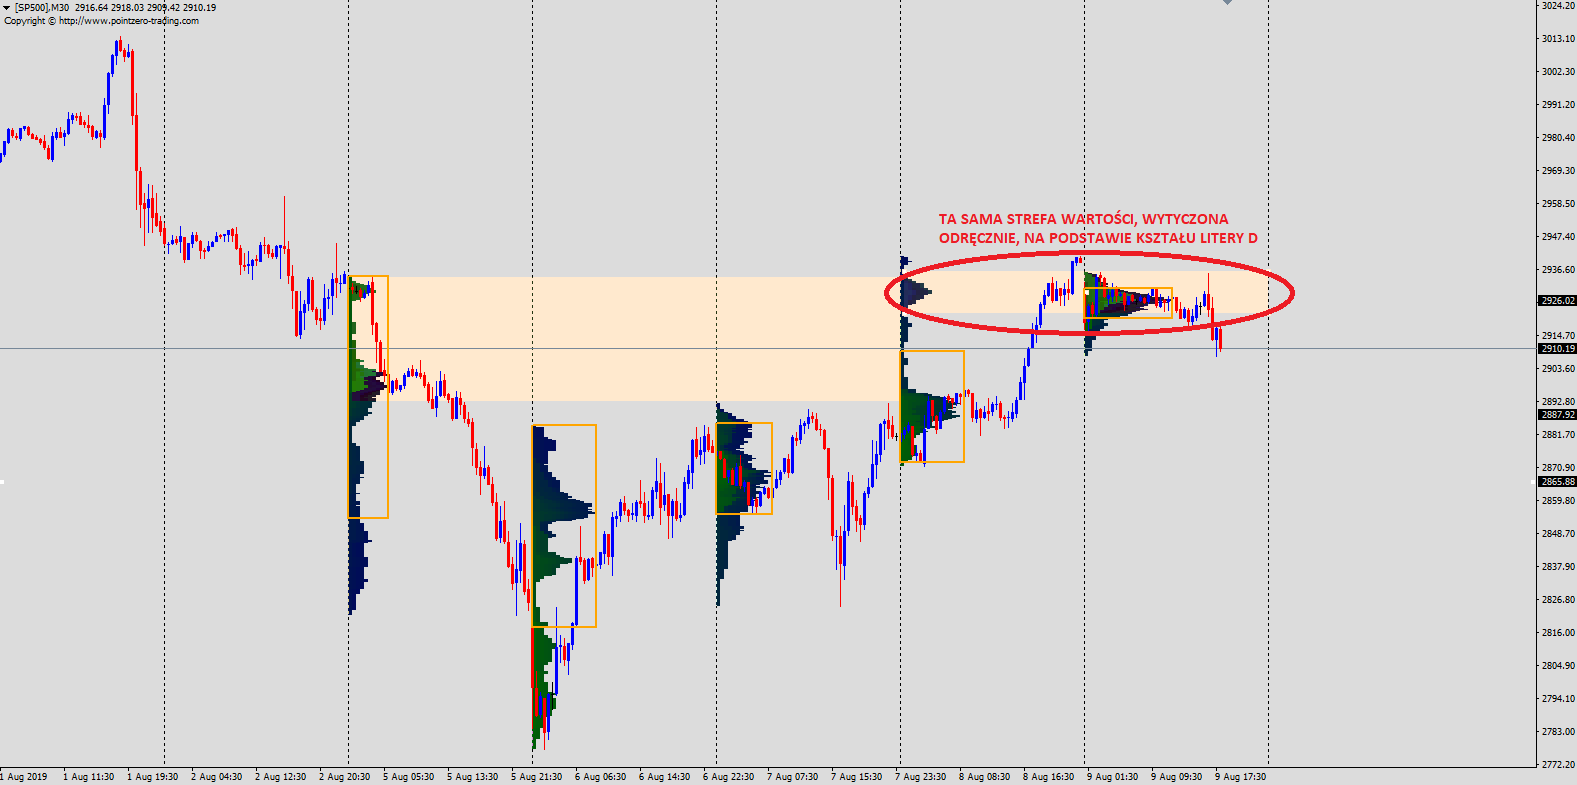 SP500 MetaTrader 5